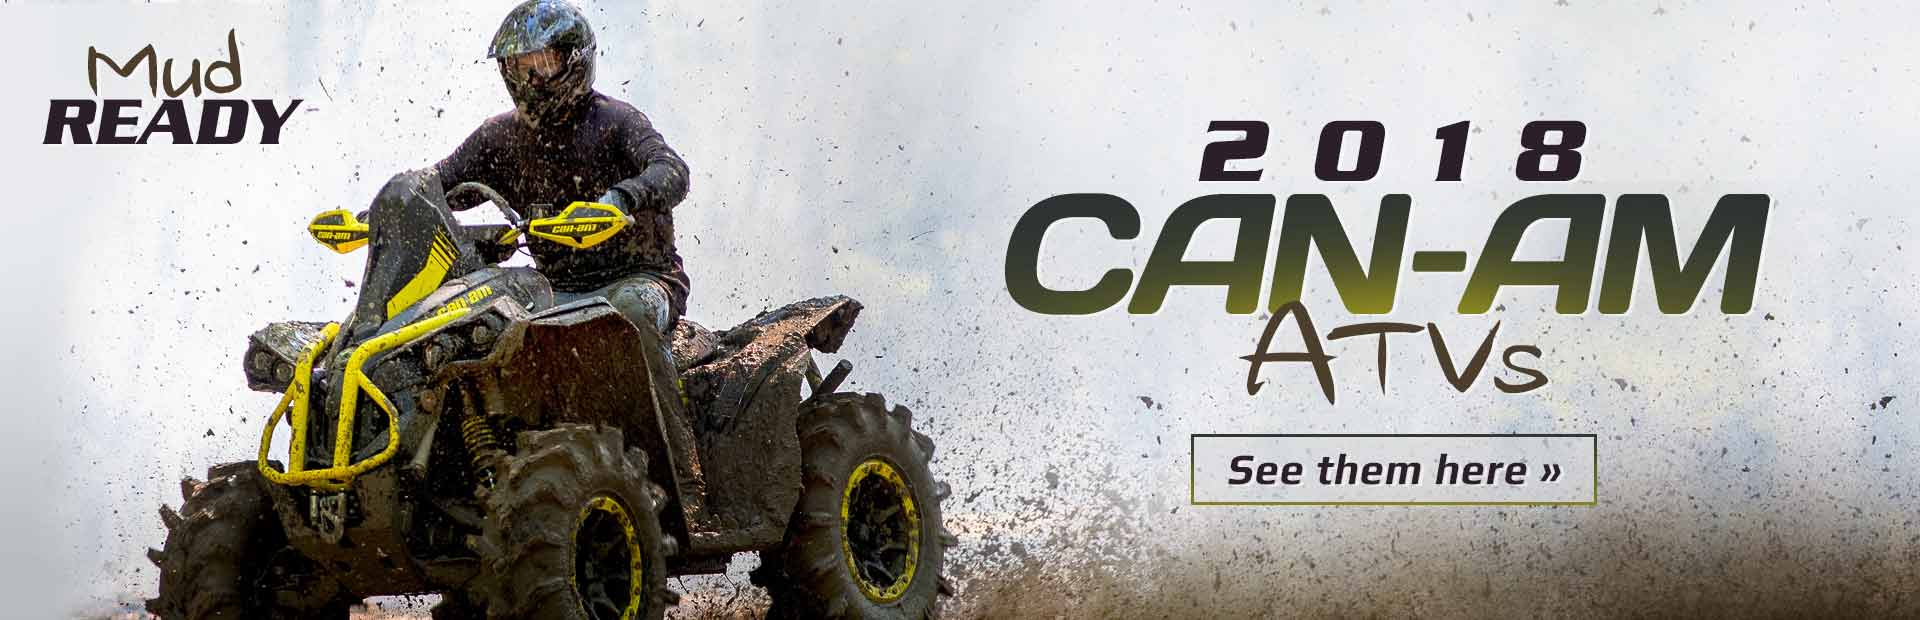 2018 Can-Am ATVs: Click here to view the models.